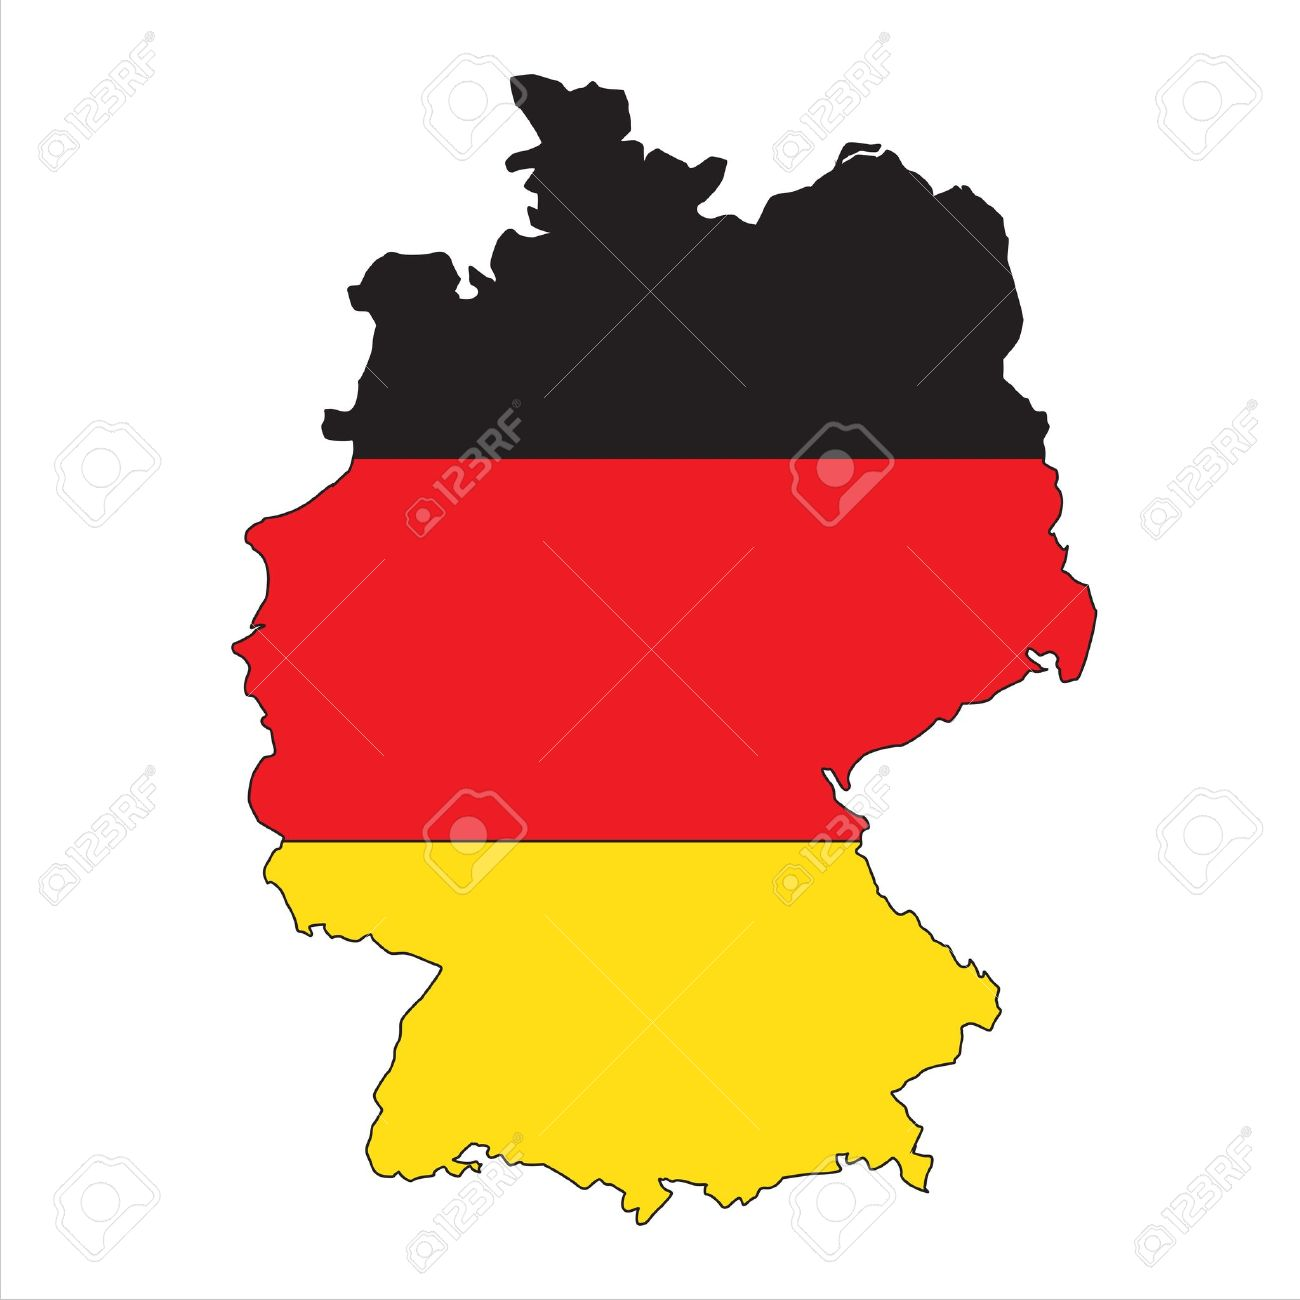 Germany map with flag - 11237743